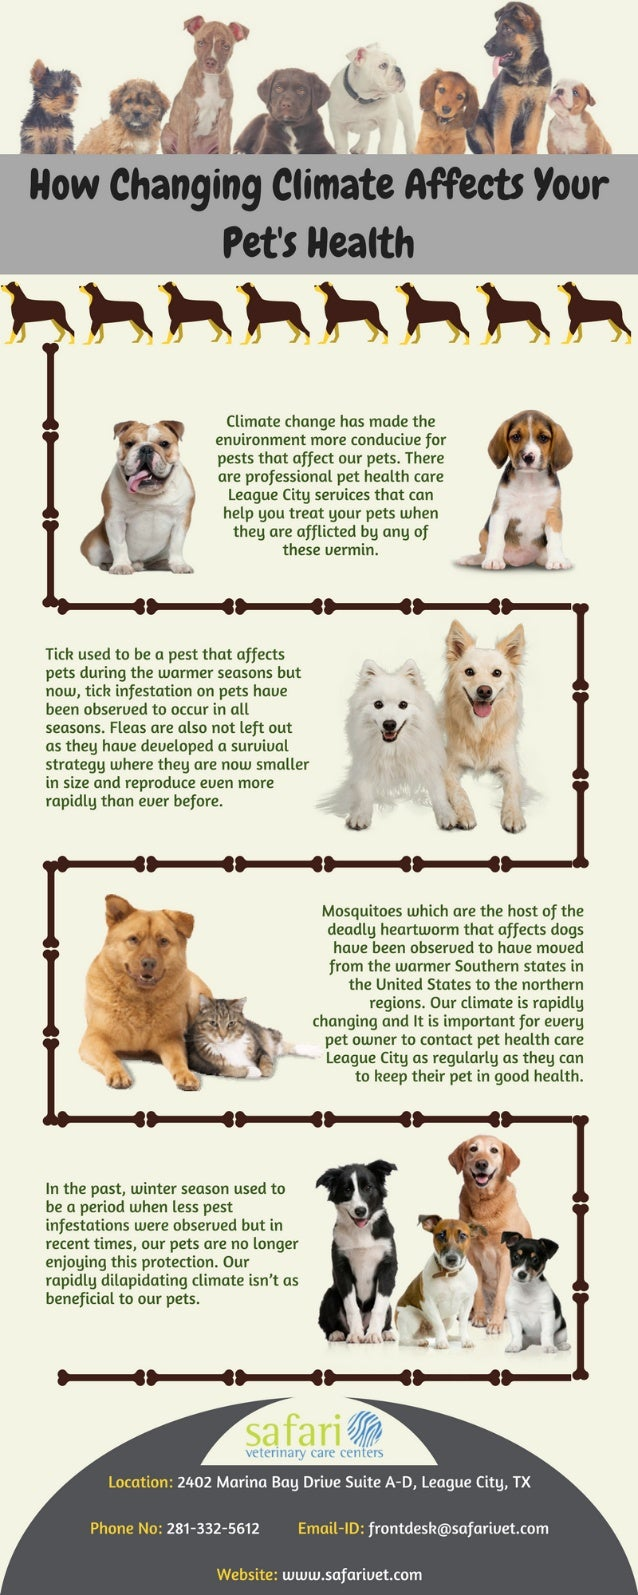 How changing climate affects your pet's health